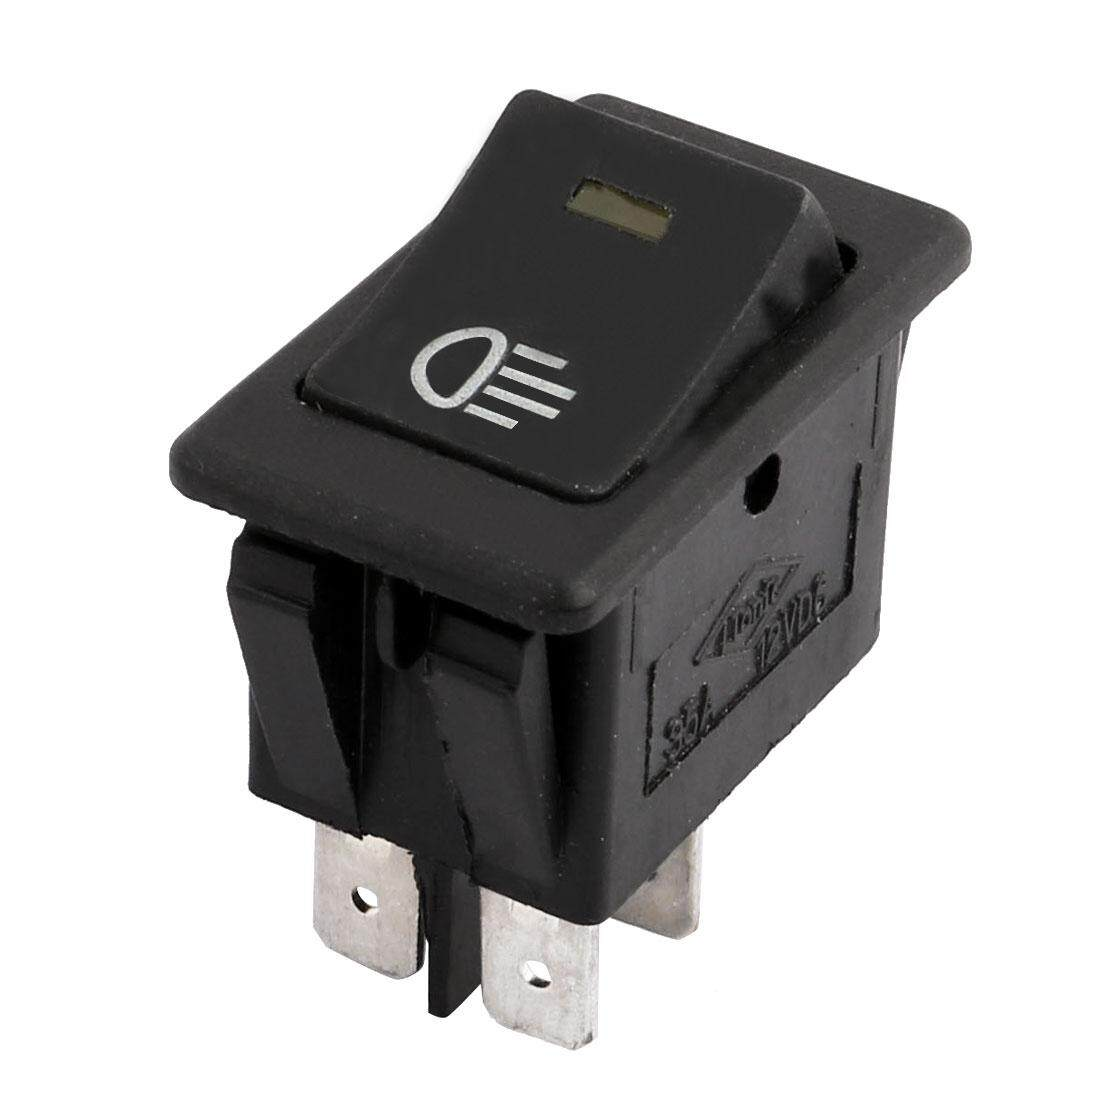 Buy Sell Cheapest Axa 12v Yellow Best Quality Product Deals Rocker Switch Spst X2 With Red Green Indicator Lamps Dc 4 Pins Car Fog Lamp Light On Off Foglight